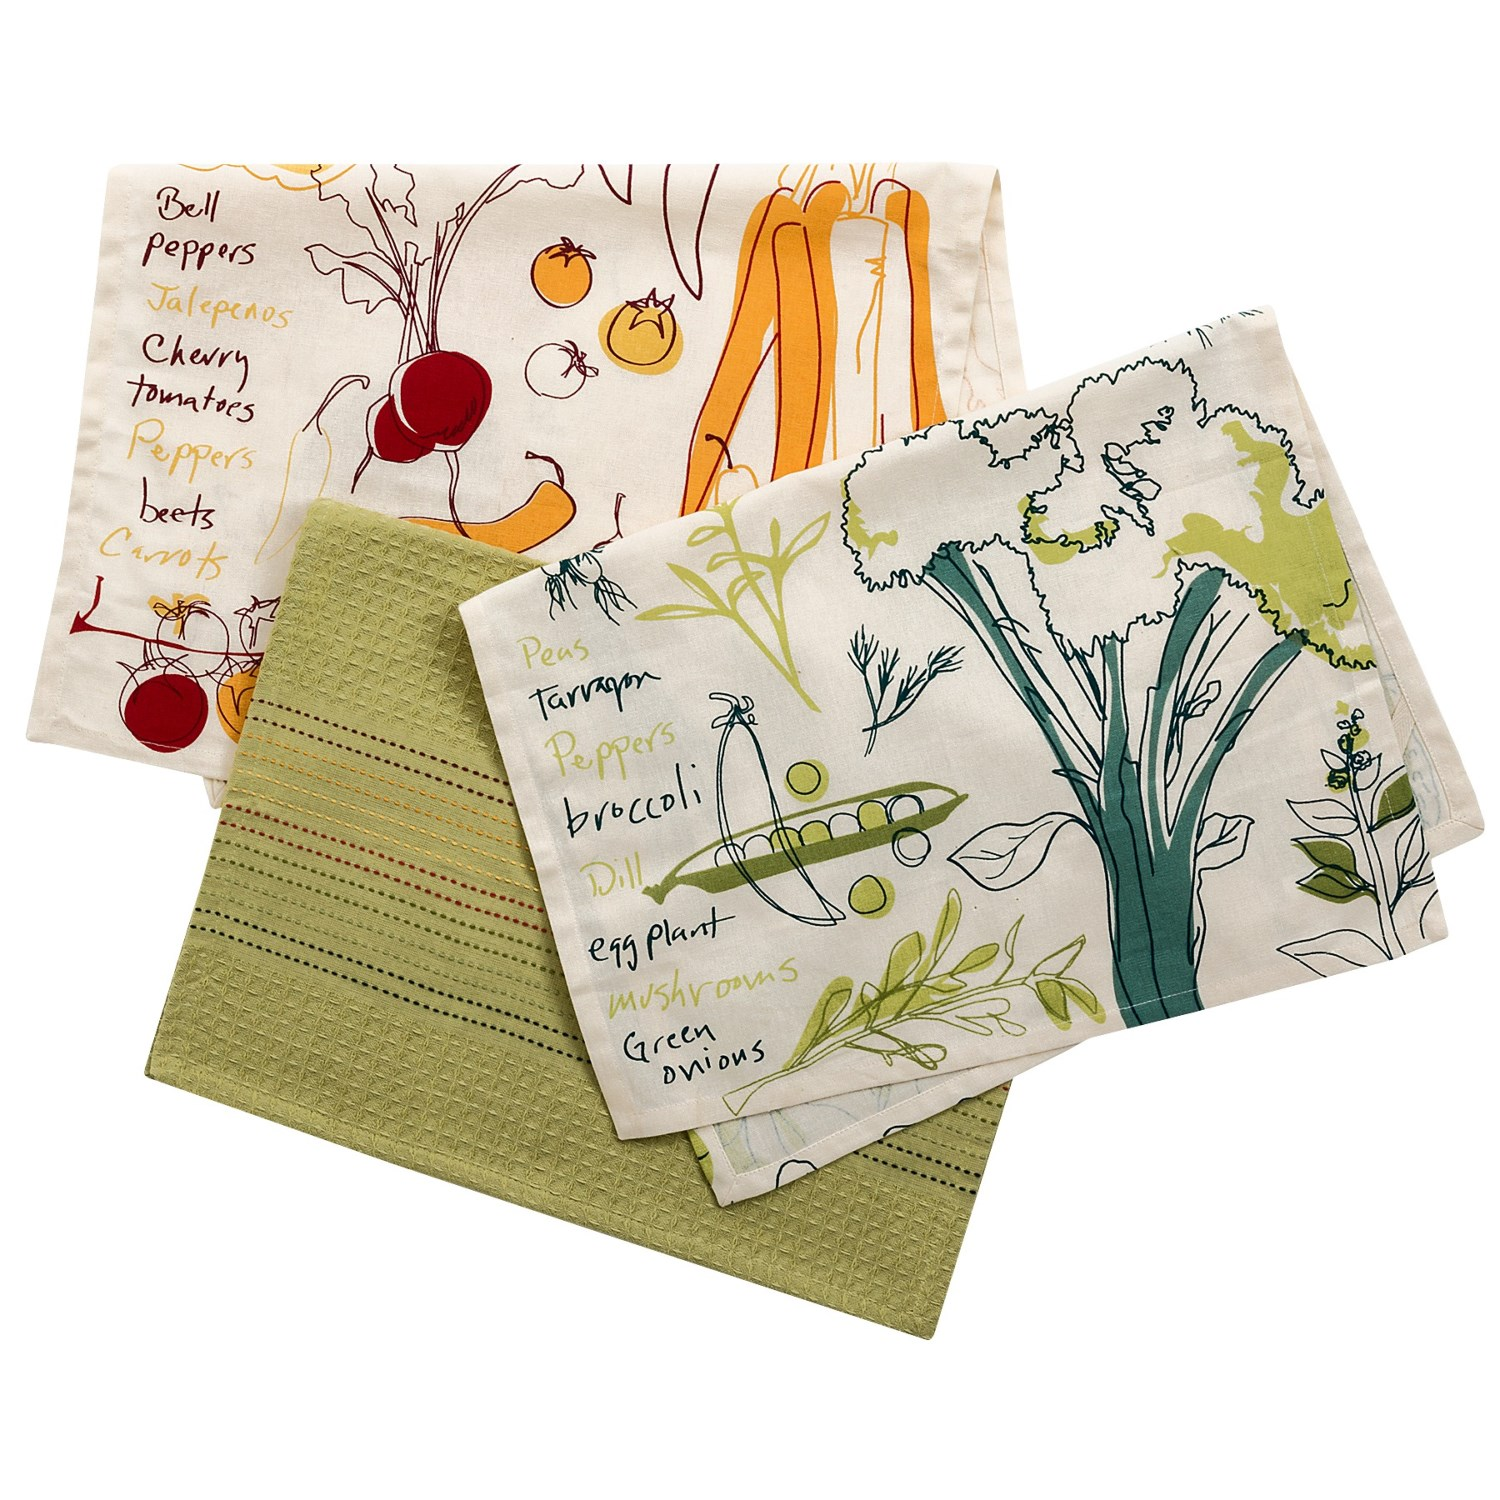 Tag French Kitchen Dish Towels Cotton Set Of 3 8993k Save 37